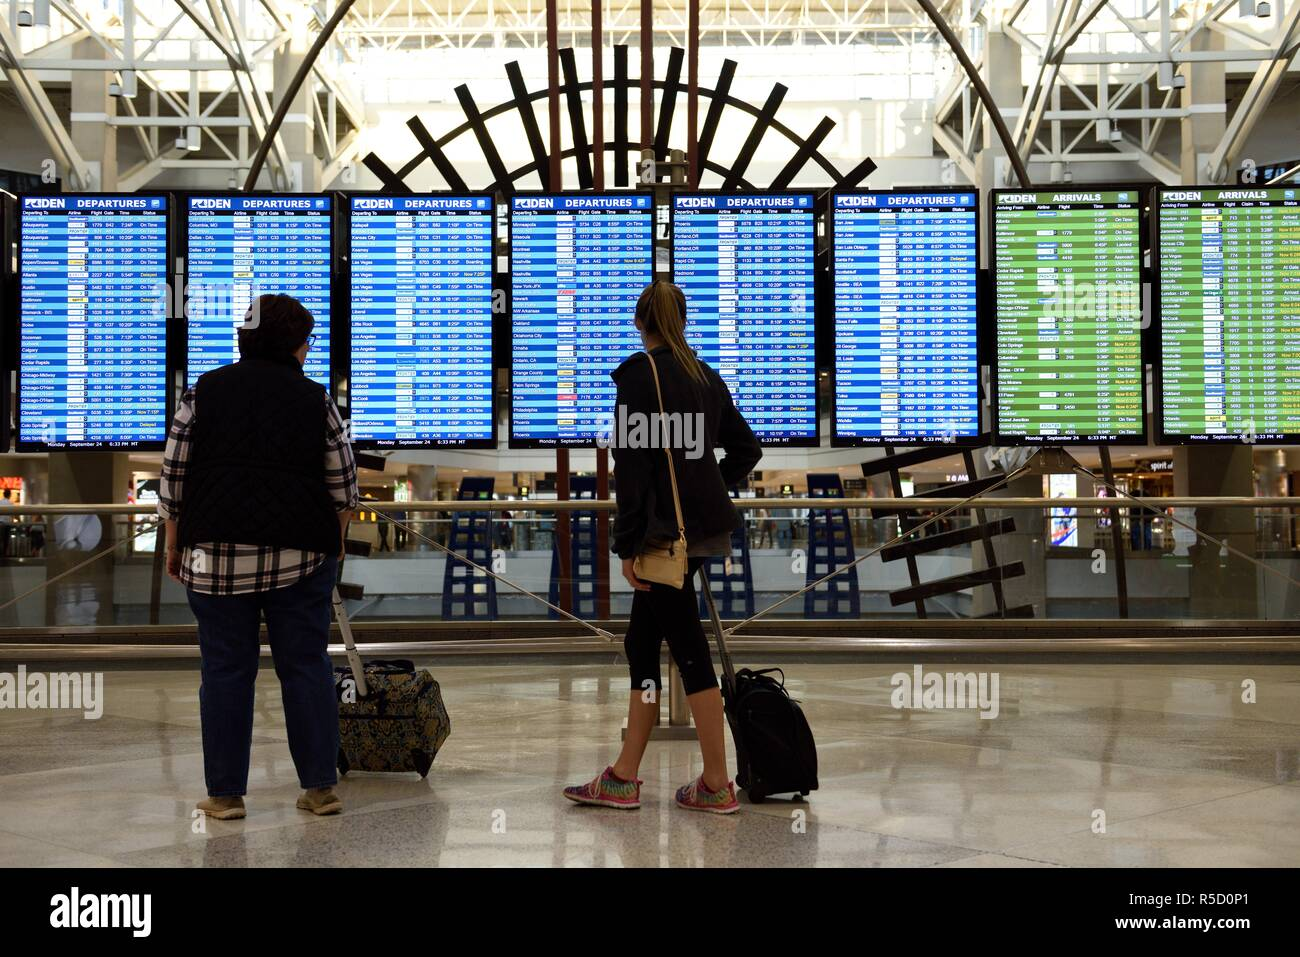 Travelers checking the flight arrival and departures information schedule display screens at Denver International Airport in Colorado, USA. - Stock Image